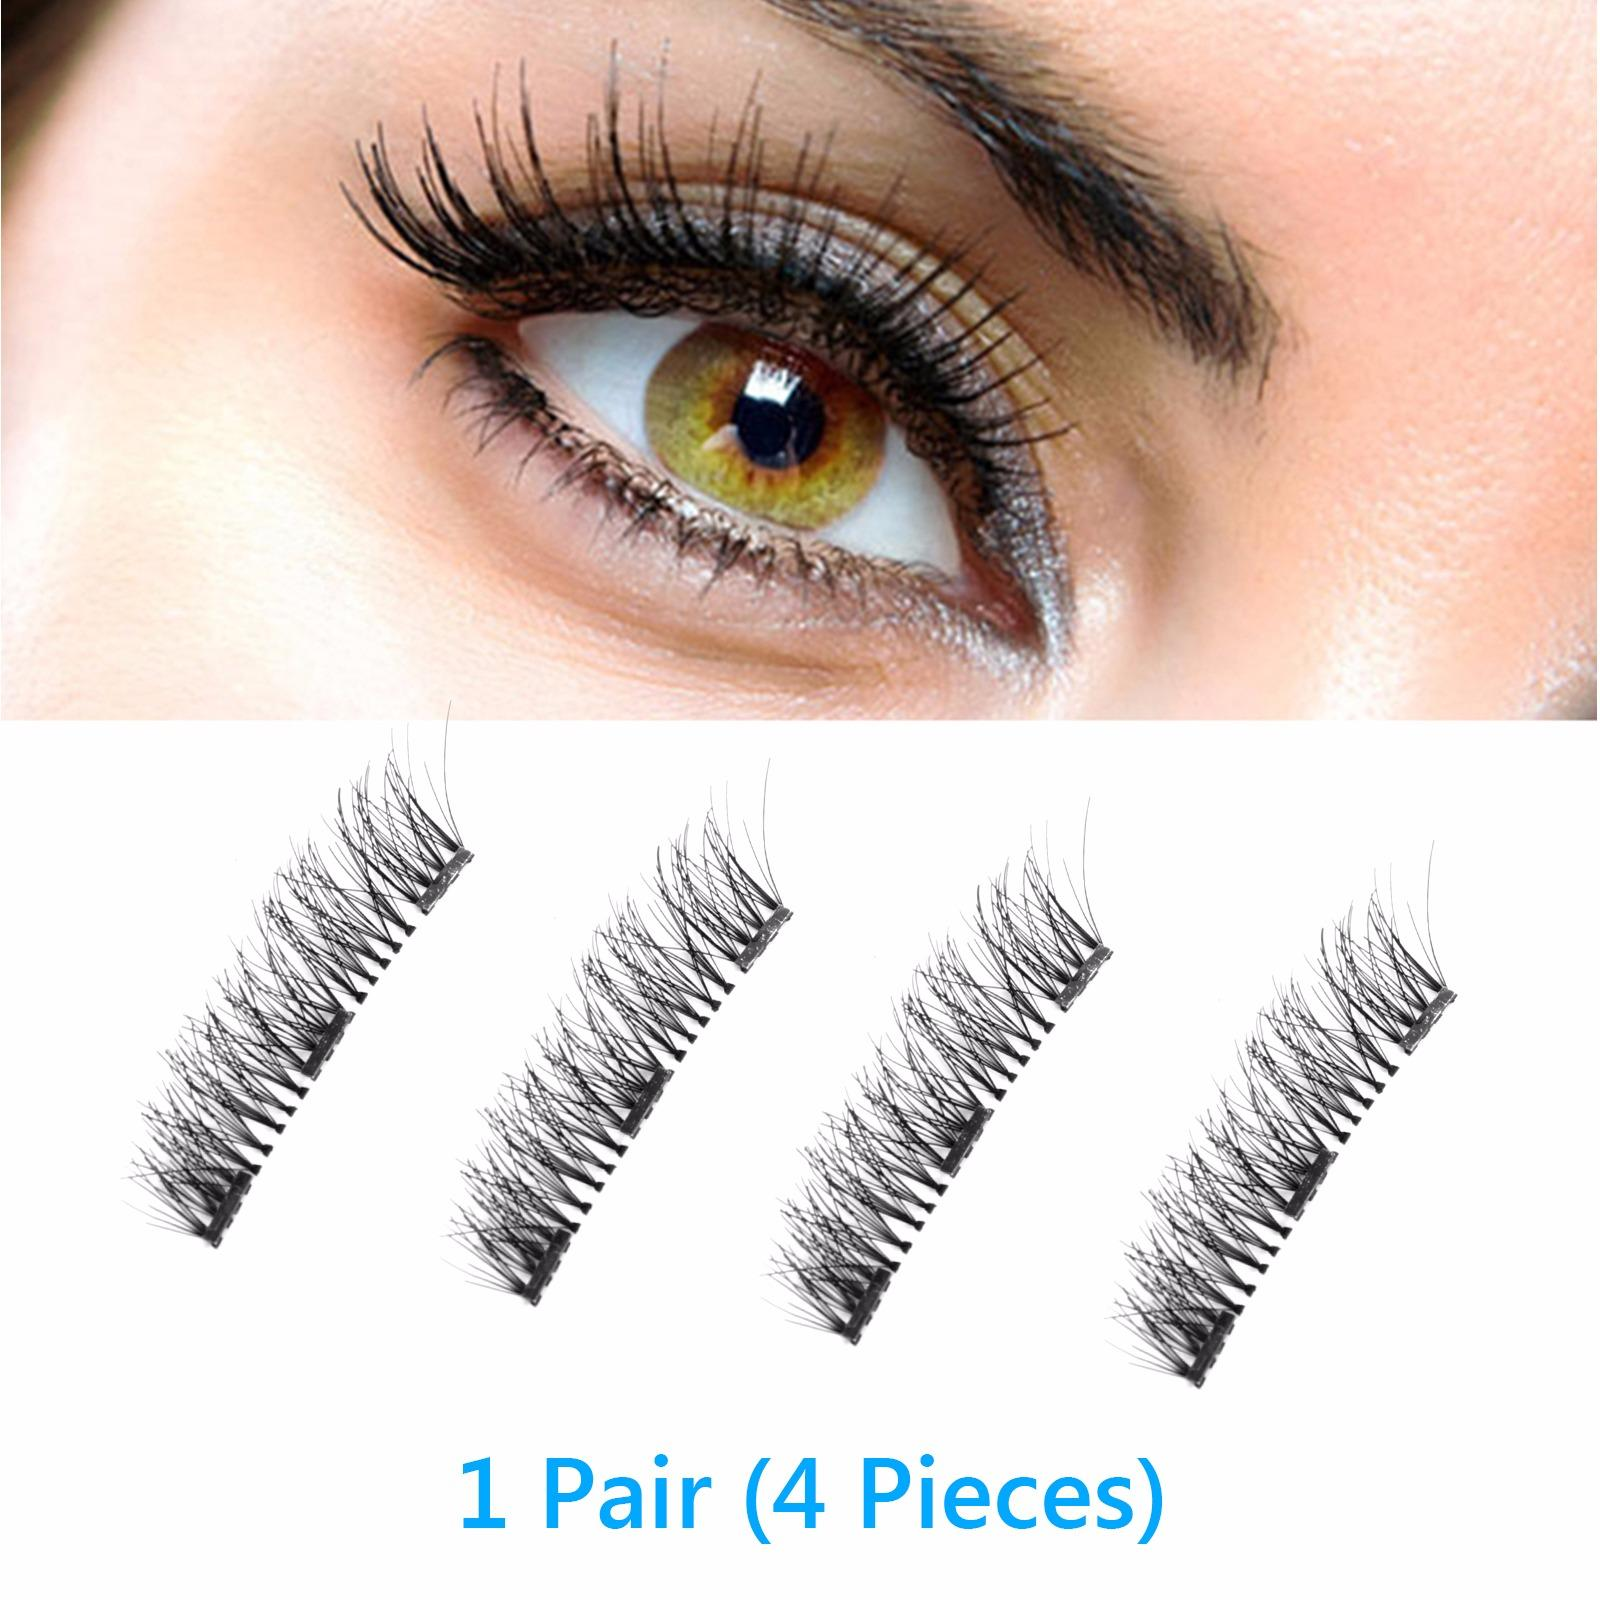 6e209d9f10e Magnetic EyeLashes False, 4Pcs/Pair Magnetic 3D Eyelashes Double Handmade  Natural False Long Eye